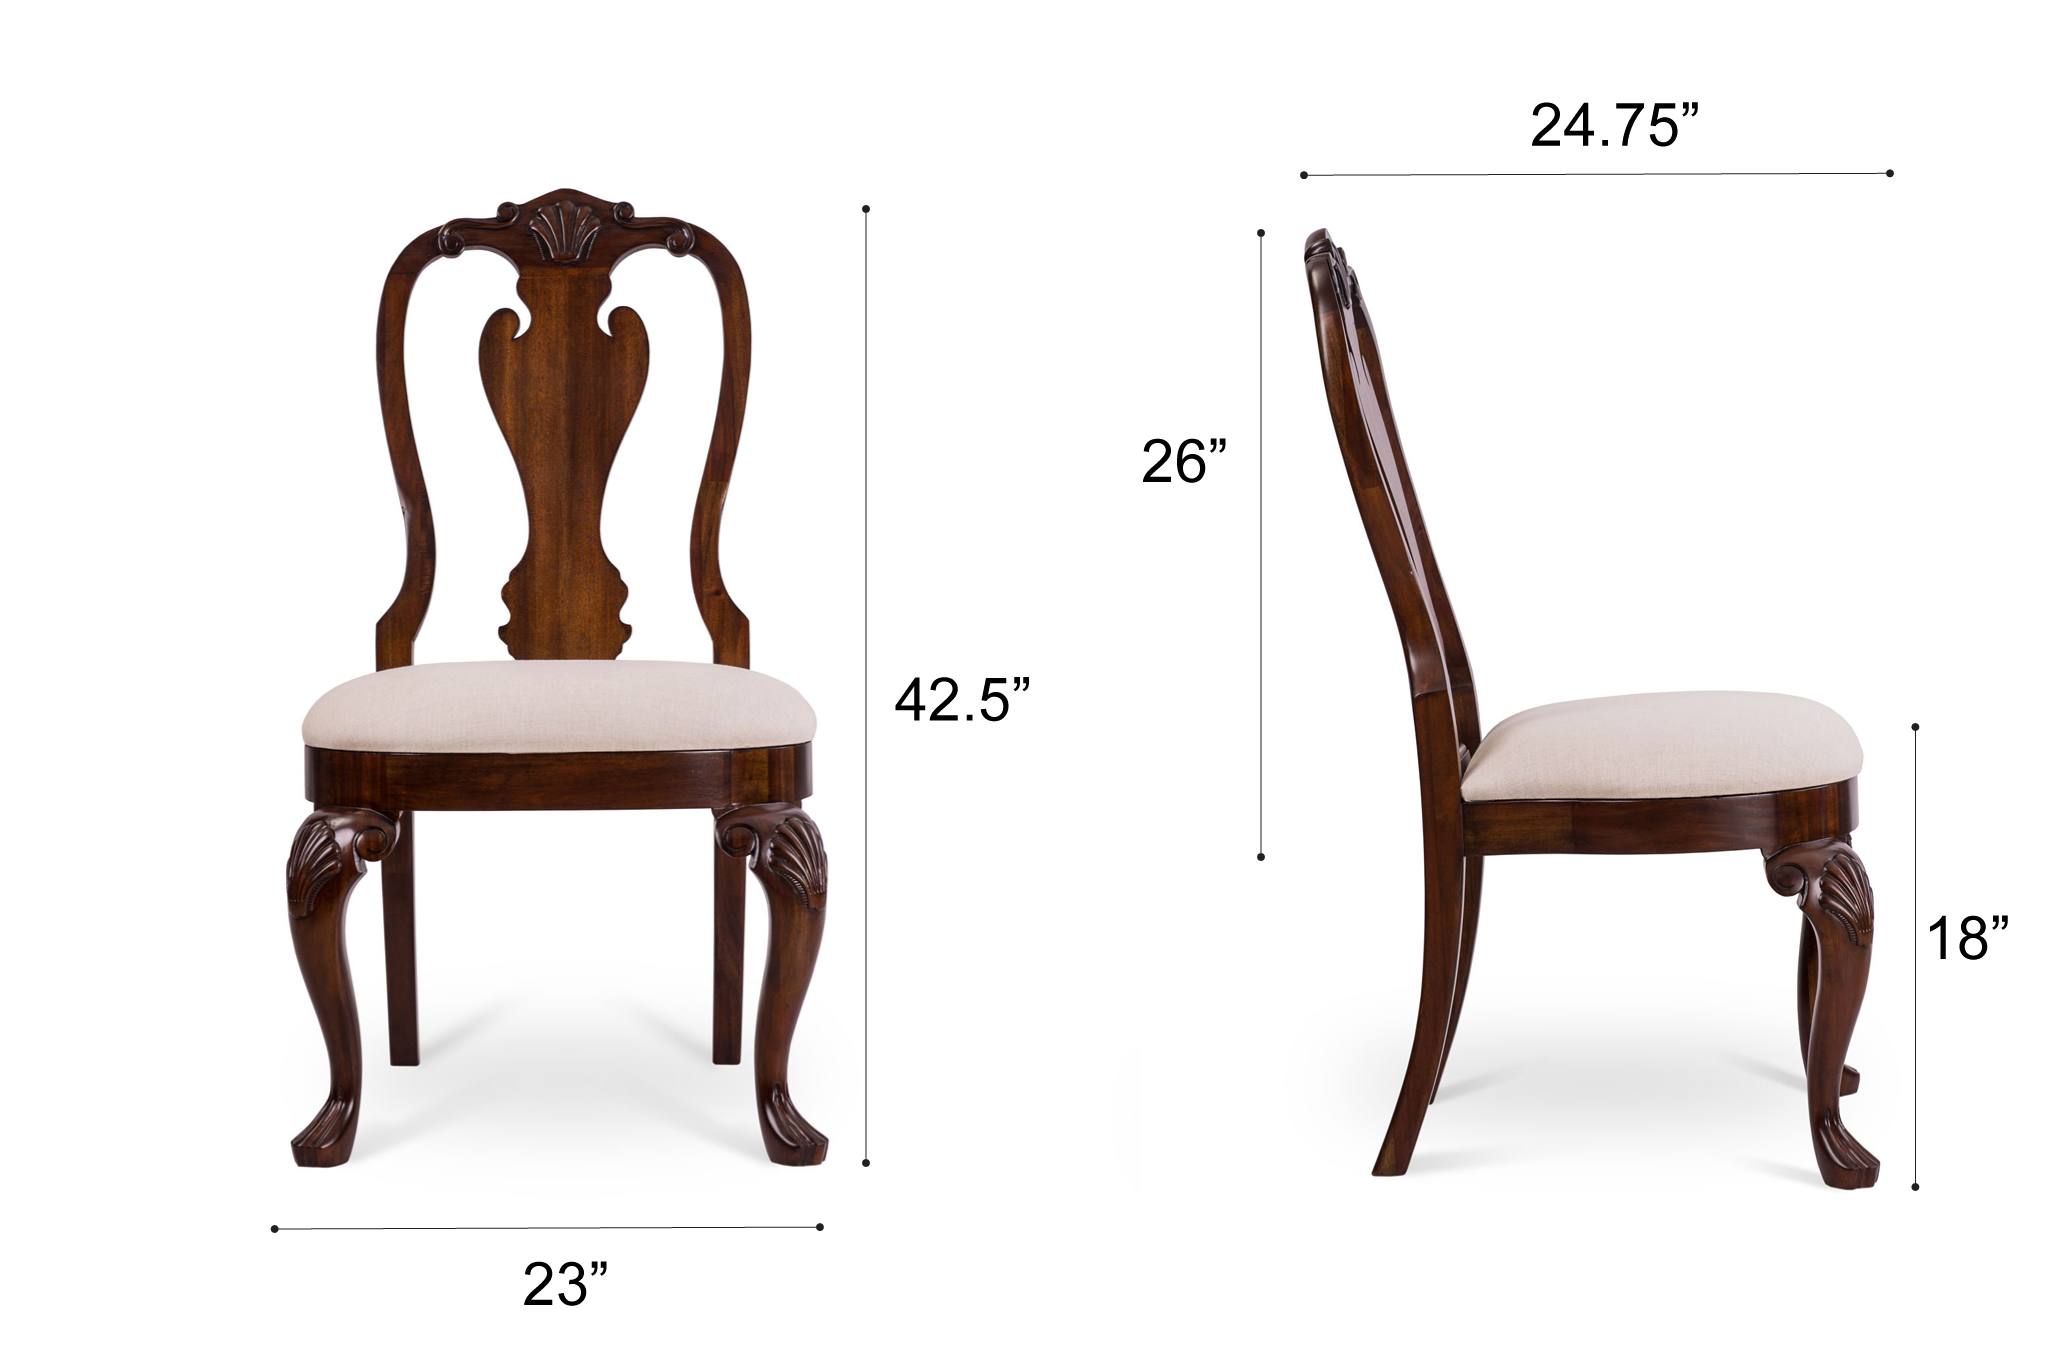 Dowel Furniture - Diana Chair Dimensions